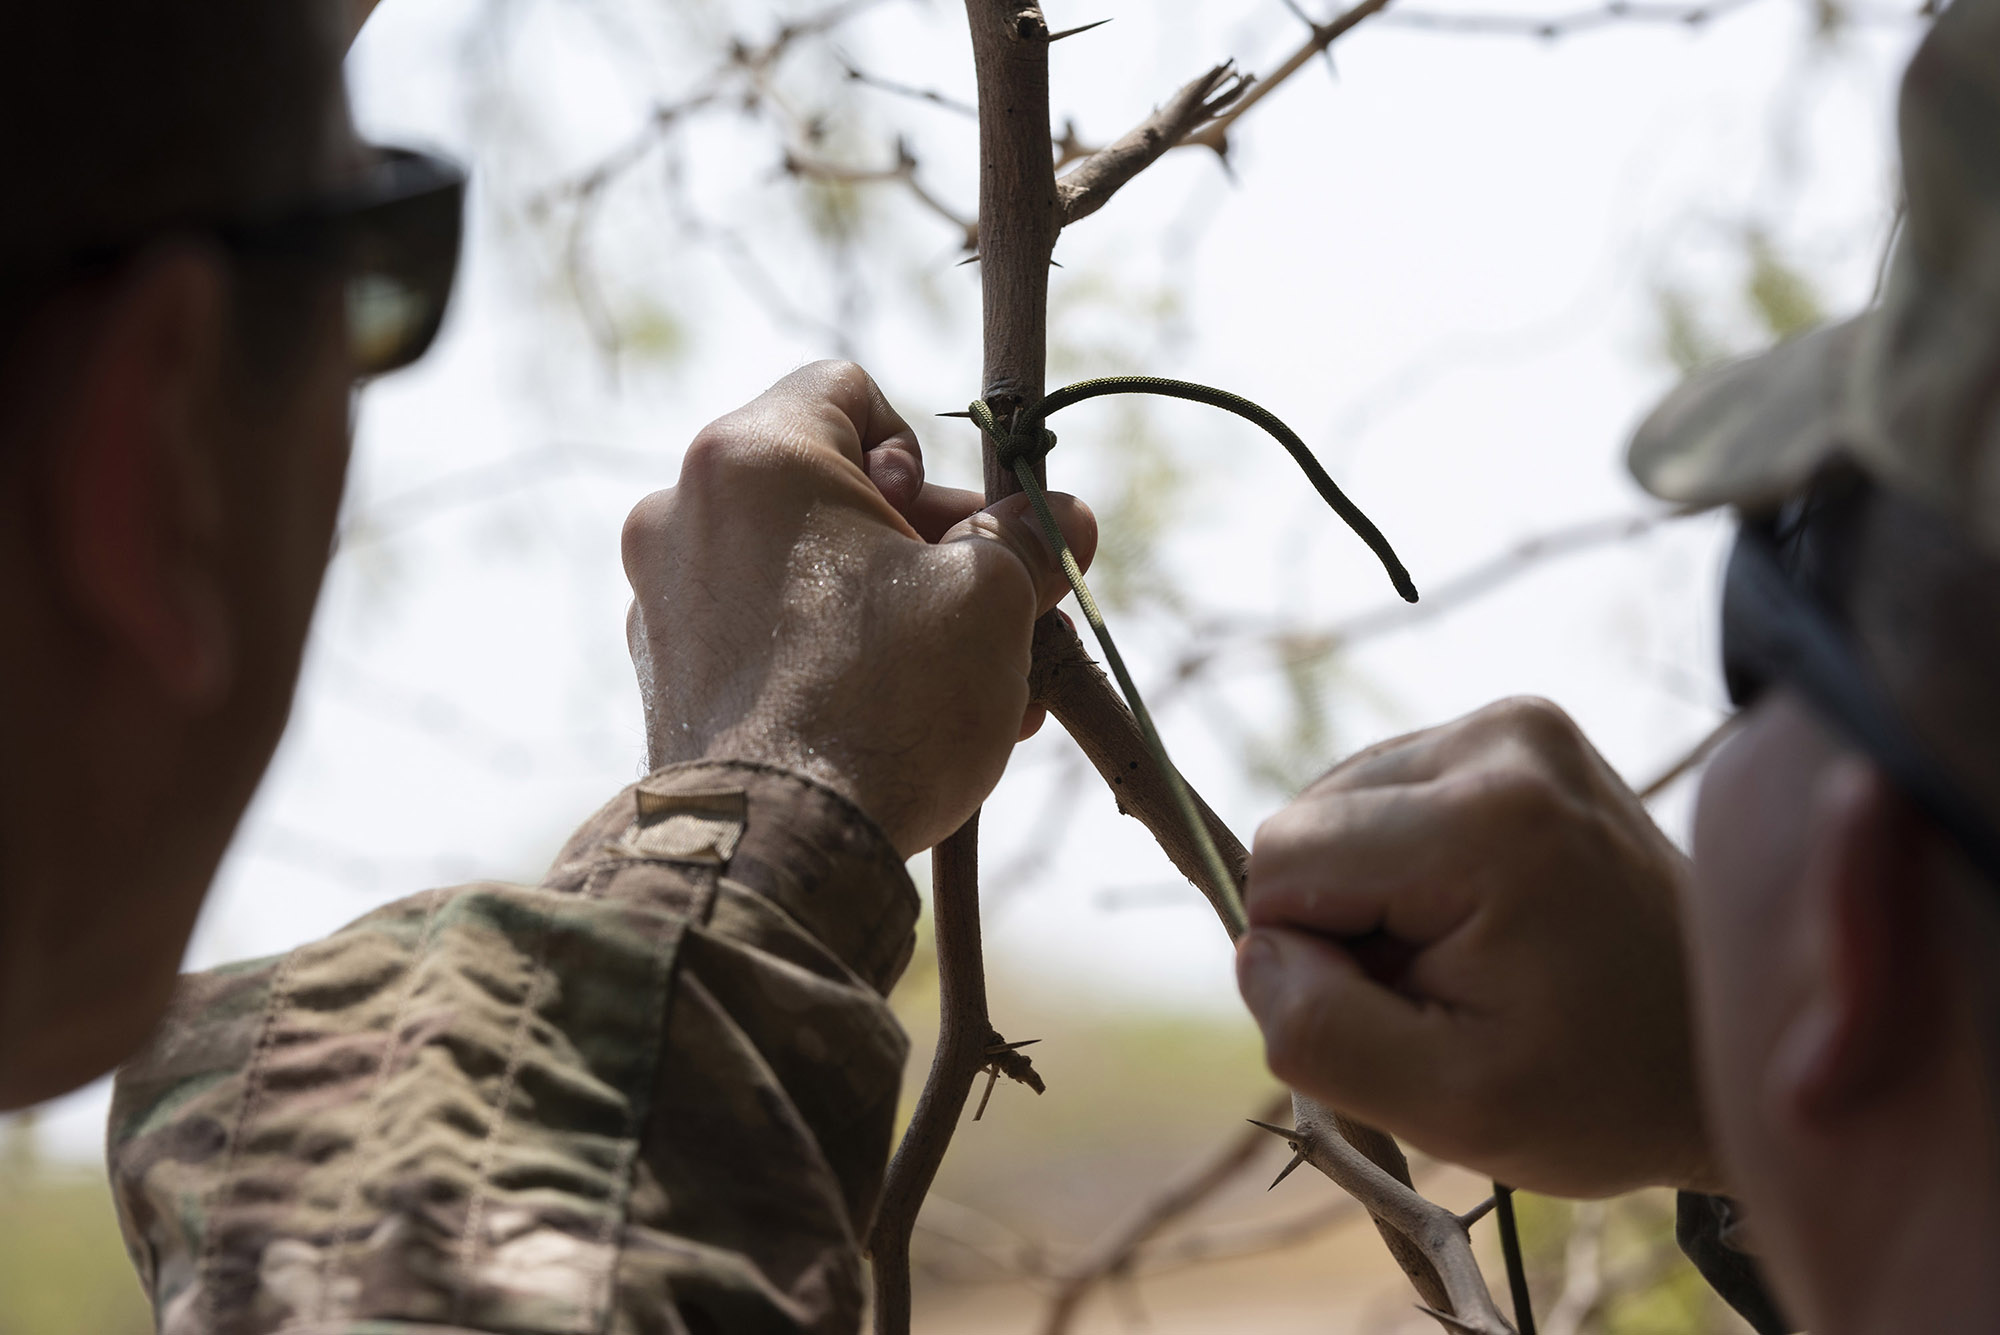 U.S. Army Sgt. 1st Class Amando Vidal, a field artillery firefinder radar operator with 3rd Battalion, 133rd Field Artillery Regiment, Texas National Guard, practices tying various types of knots during survival skills training on Camp Lemonnier, Djibouti, Oct. 13, 2018. During this training, Vidal completed various tasks such as constructing a shelter, finding alternative water sources and signaling for rescue. (U.S. Air National Guard photo by Master Sgt. Sarah Mattison)